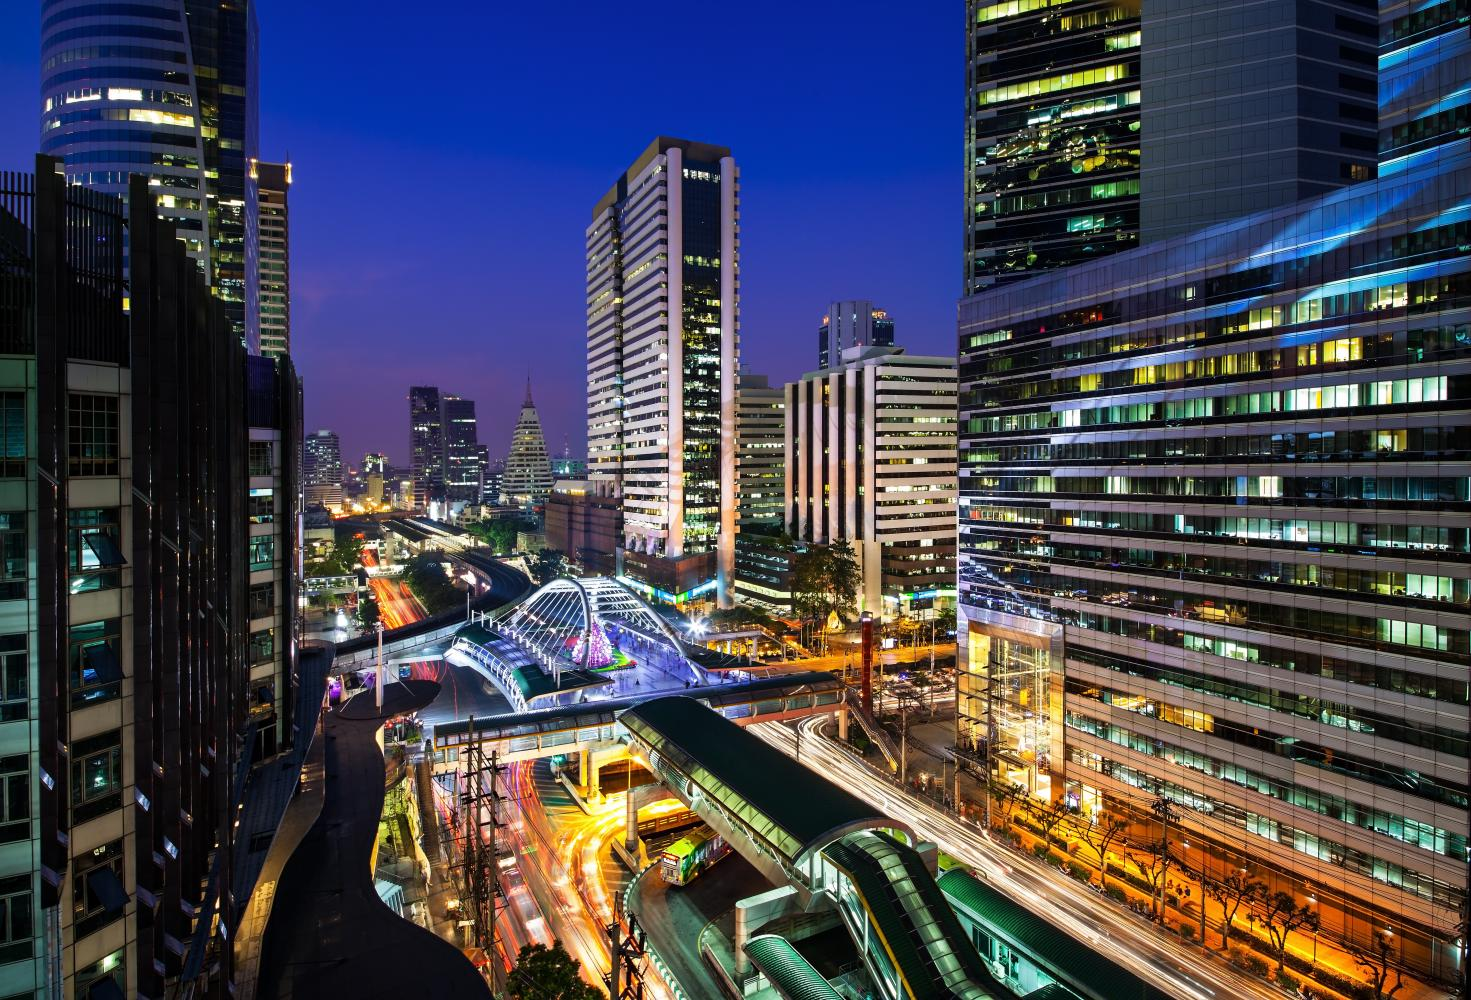 Bangkok ranked 43rd out of 50 major cities worldwide for qualities that make working and living easier.